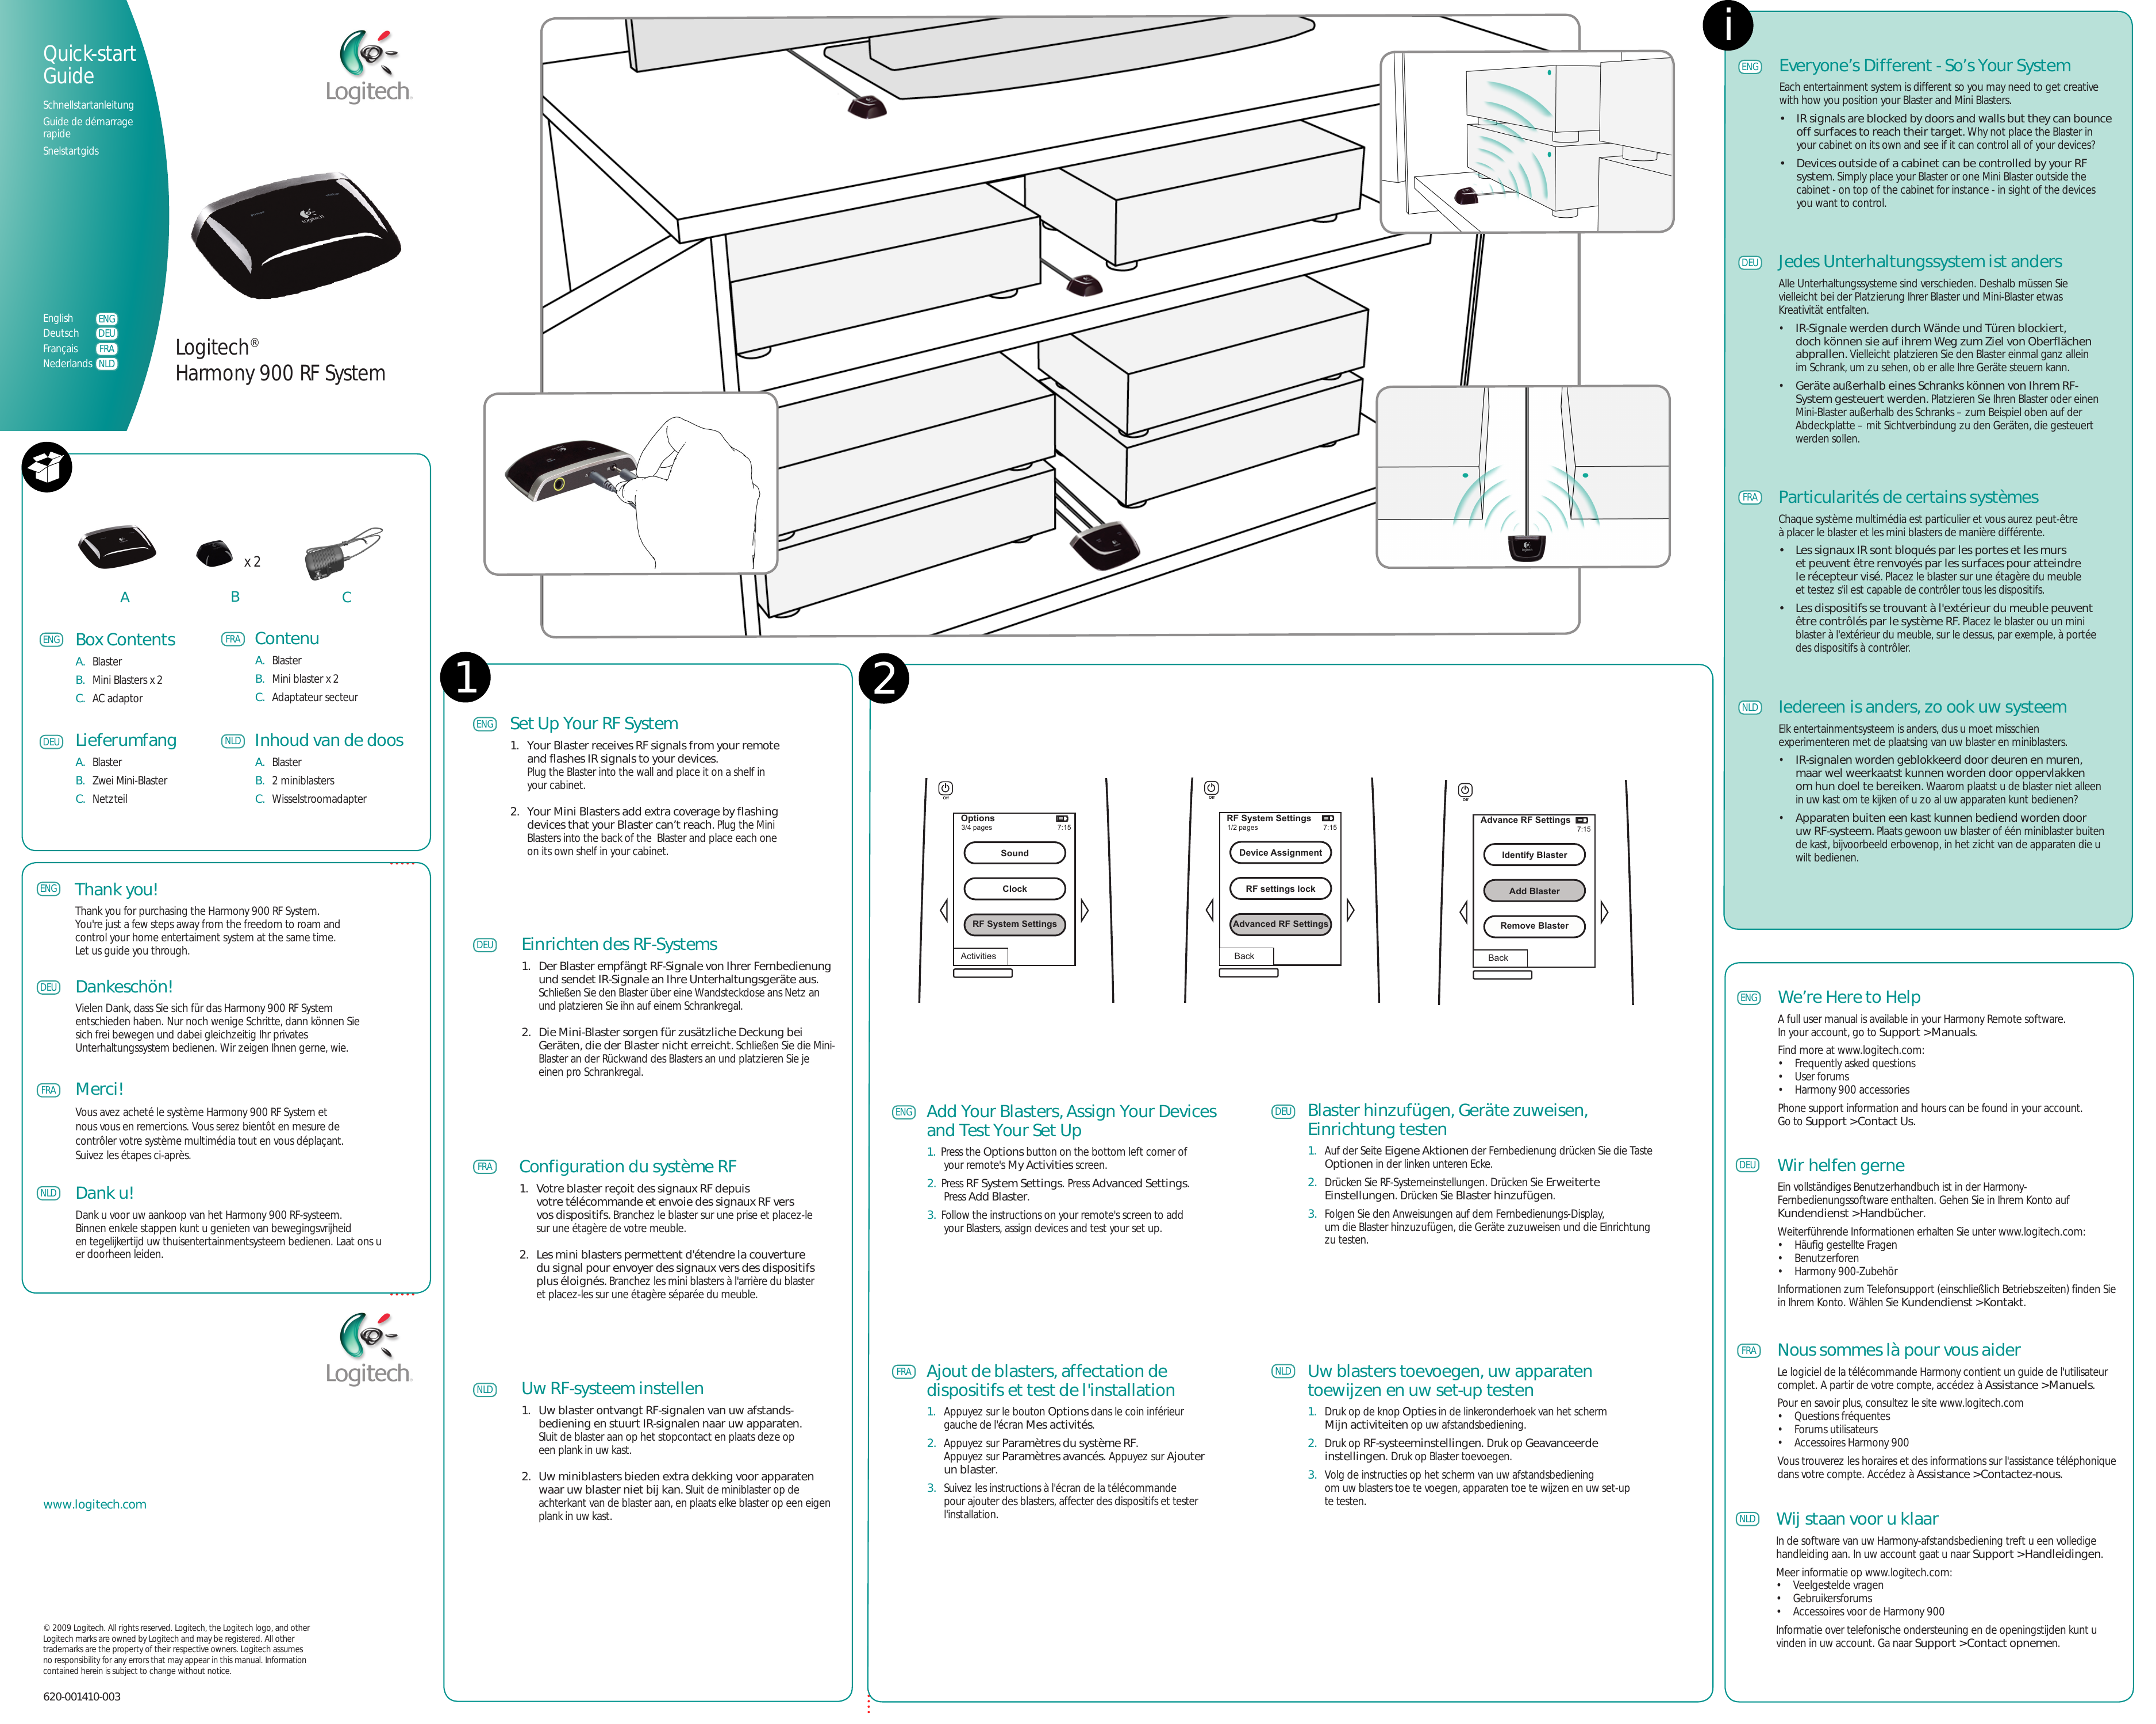 Logitech Harmony Rf System 900 Users Manual